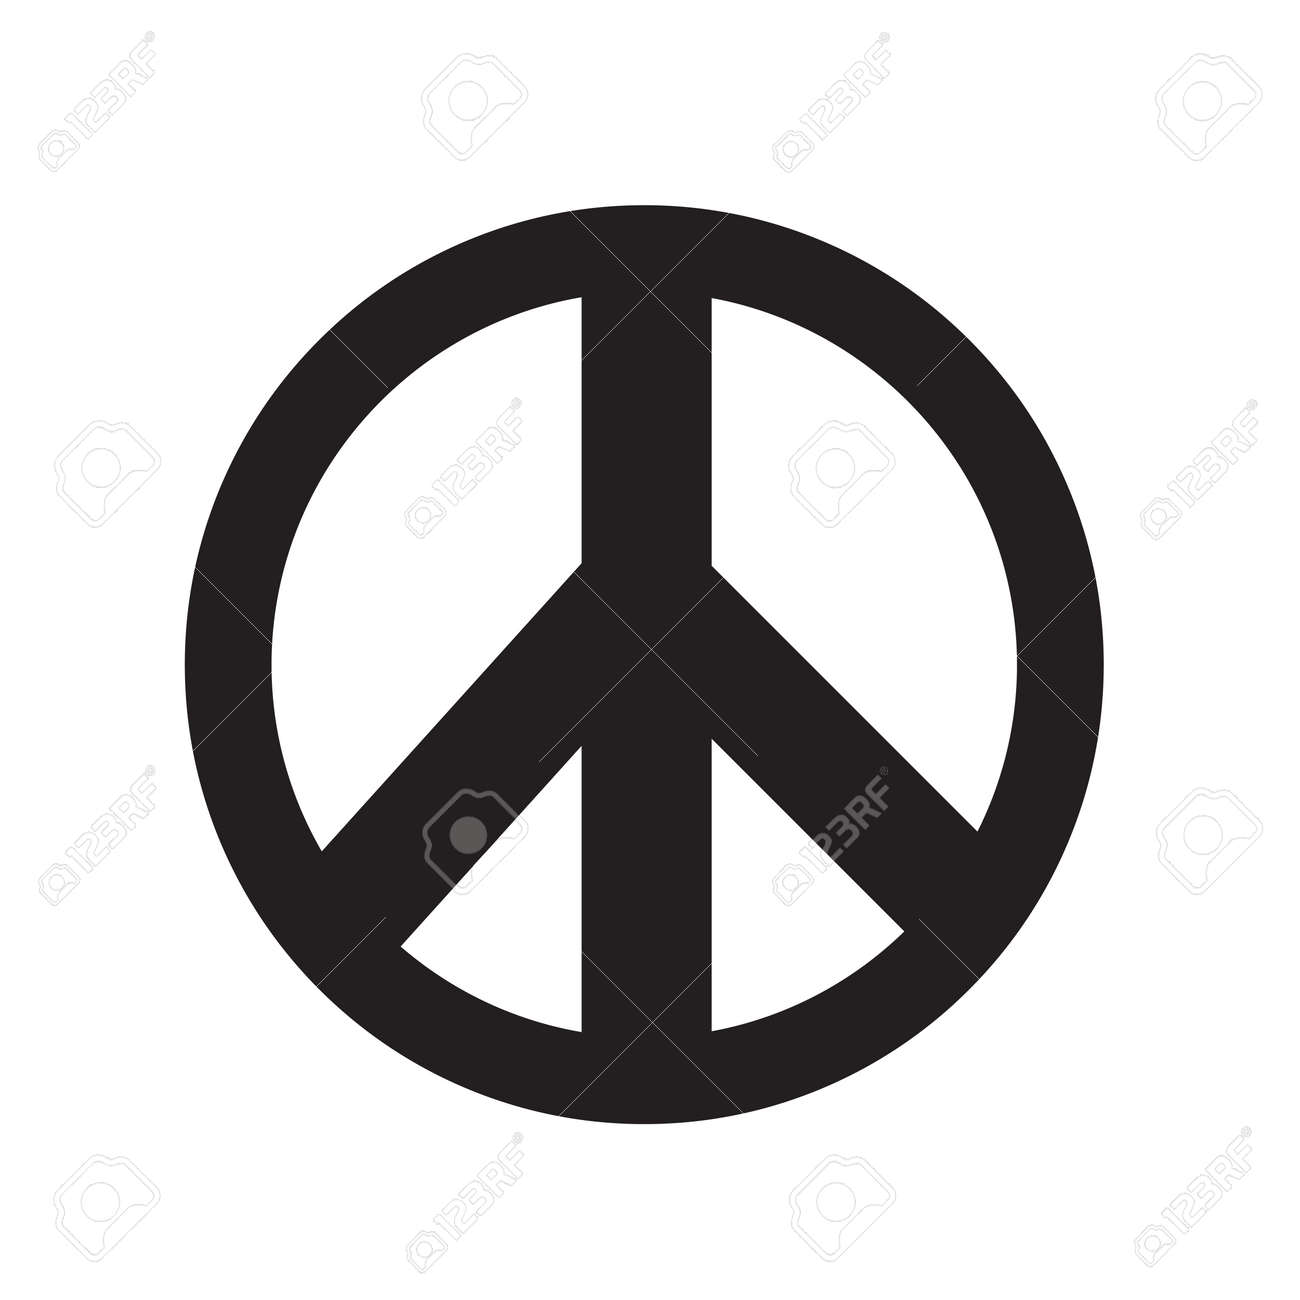 peace sign icon vector illustration royalty free cliparts vectors rh 123rf com vector peace sign fingers vector peace sign with hands